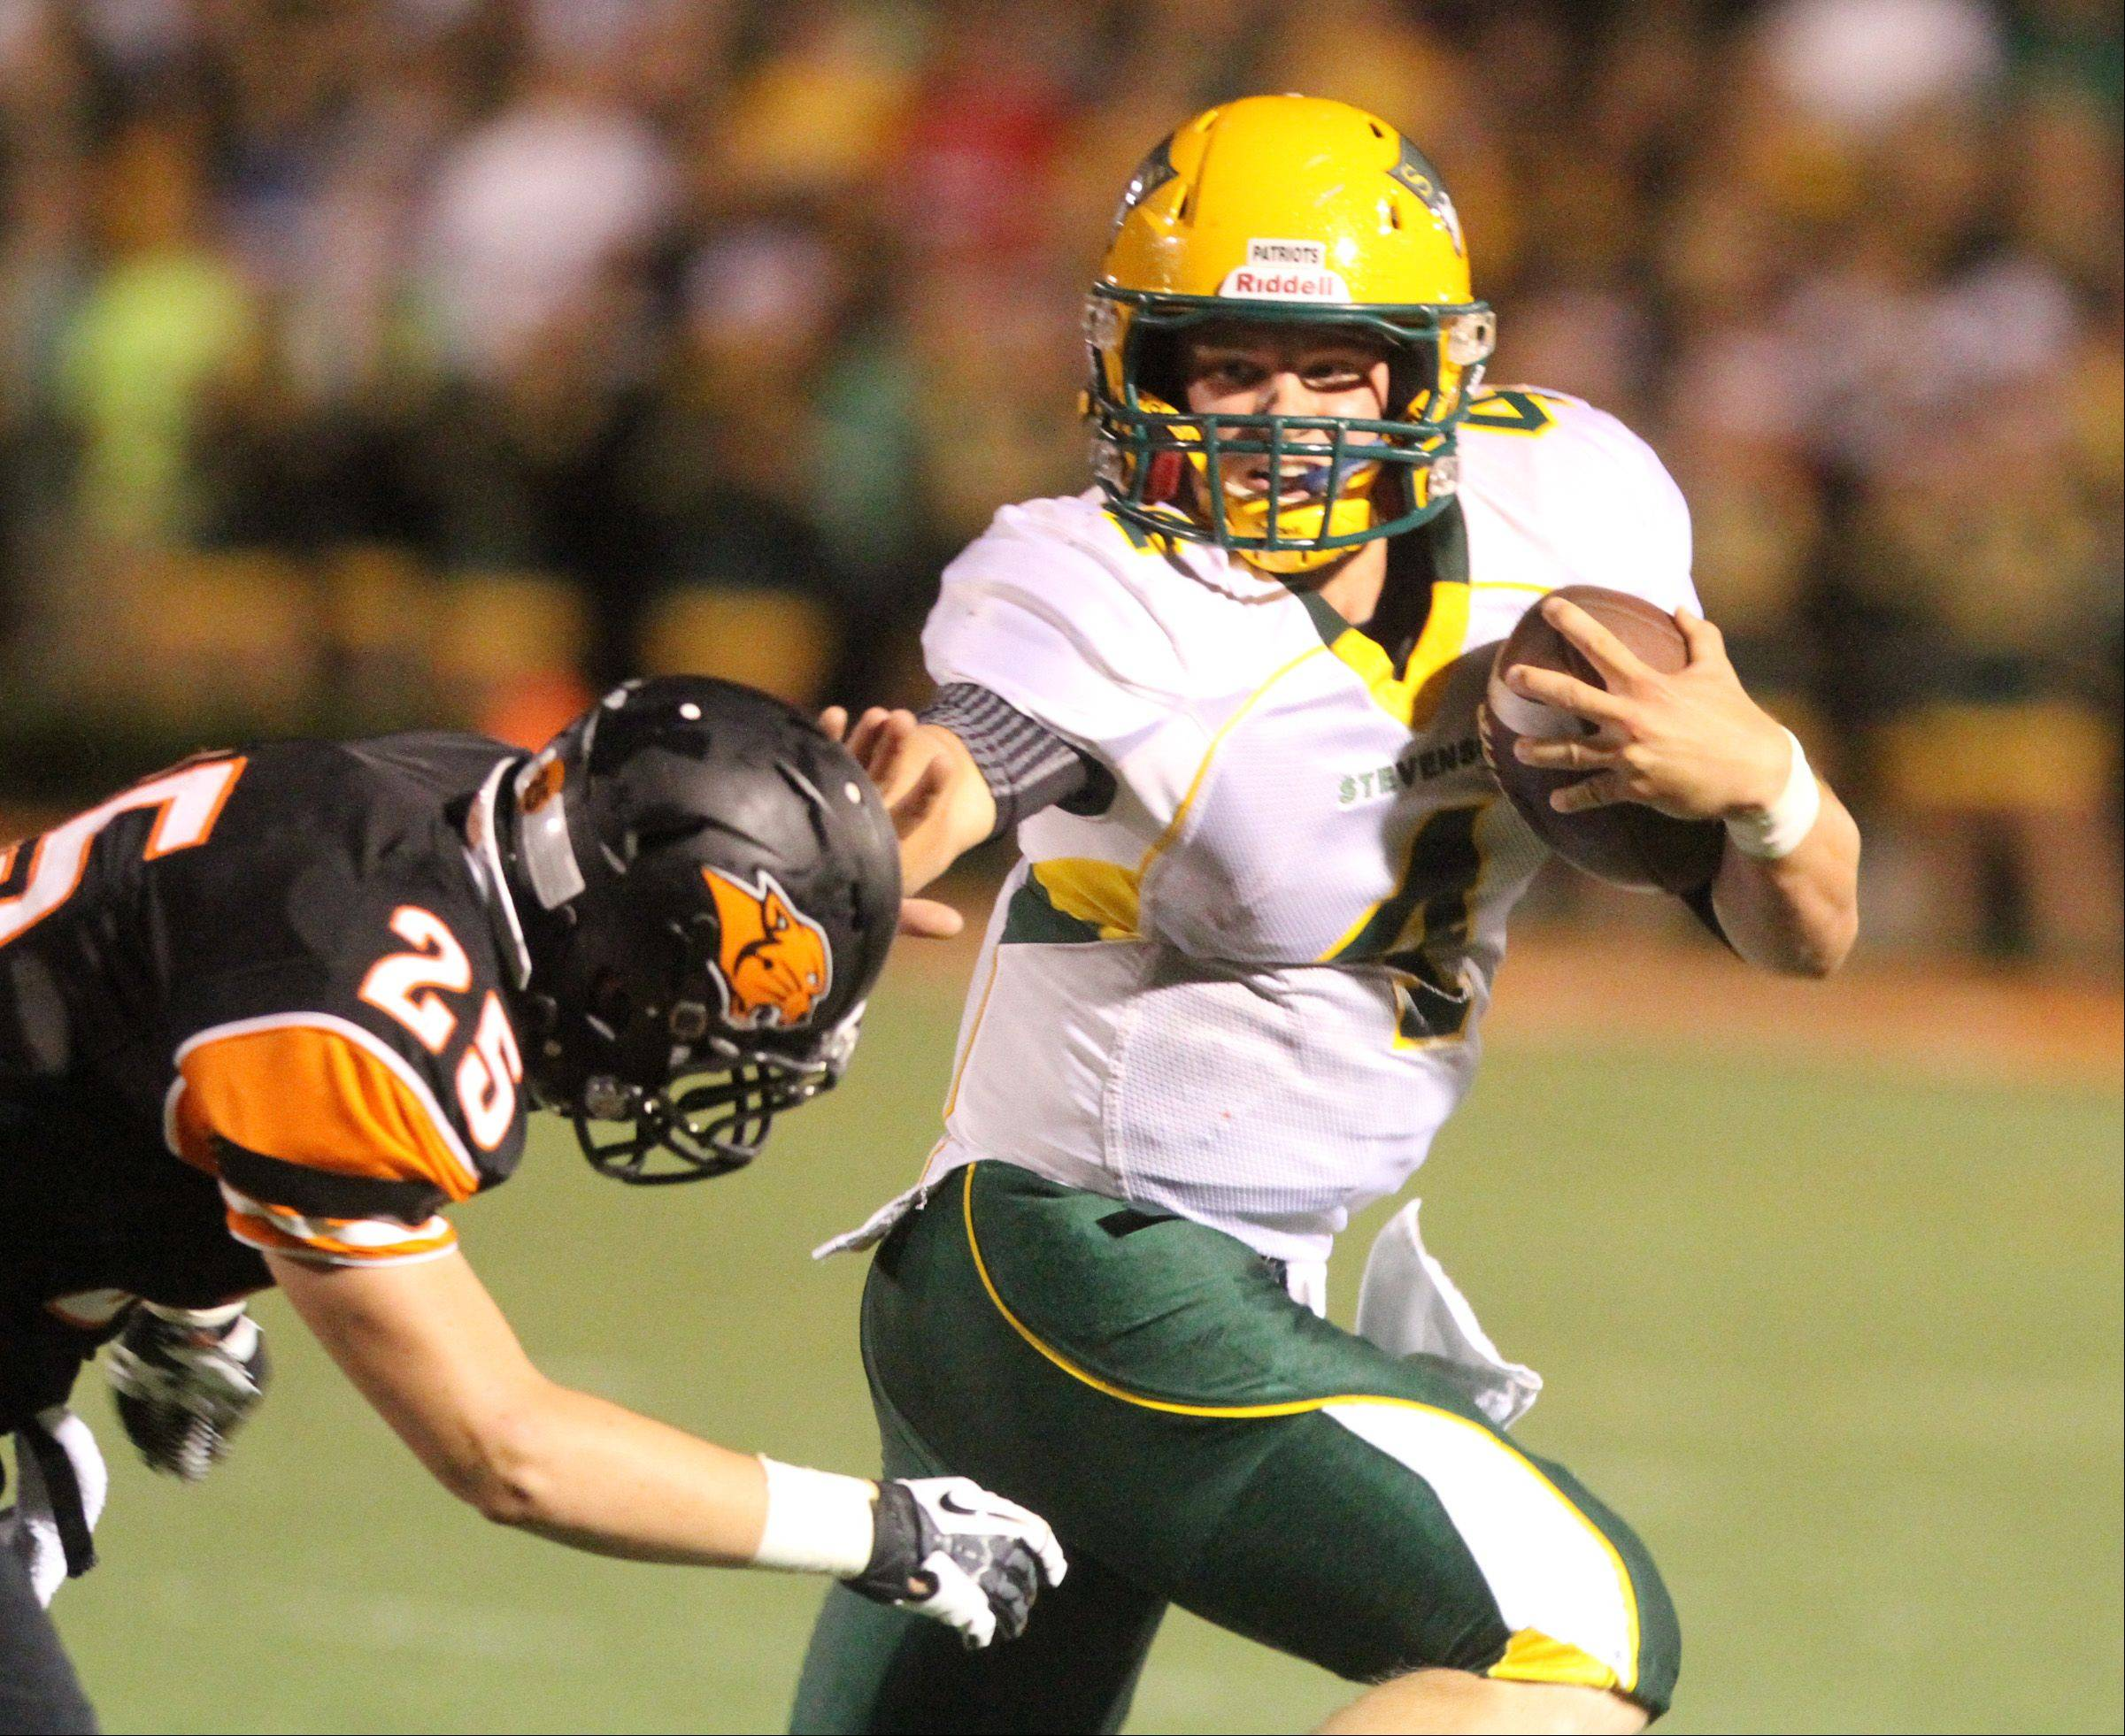 Stevenson quarterback Willie Bourbon scrambles after attempting to pass.